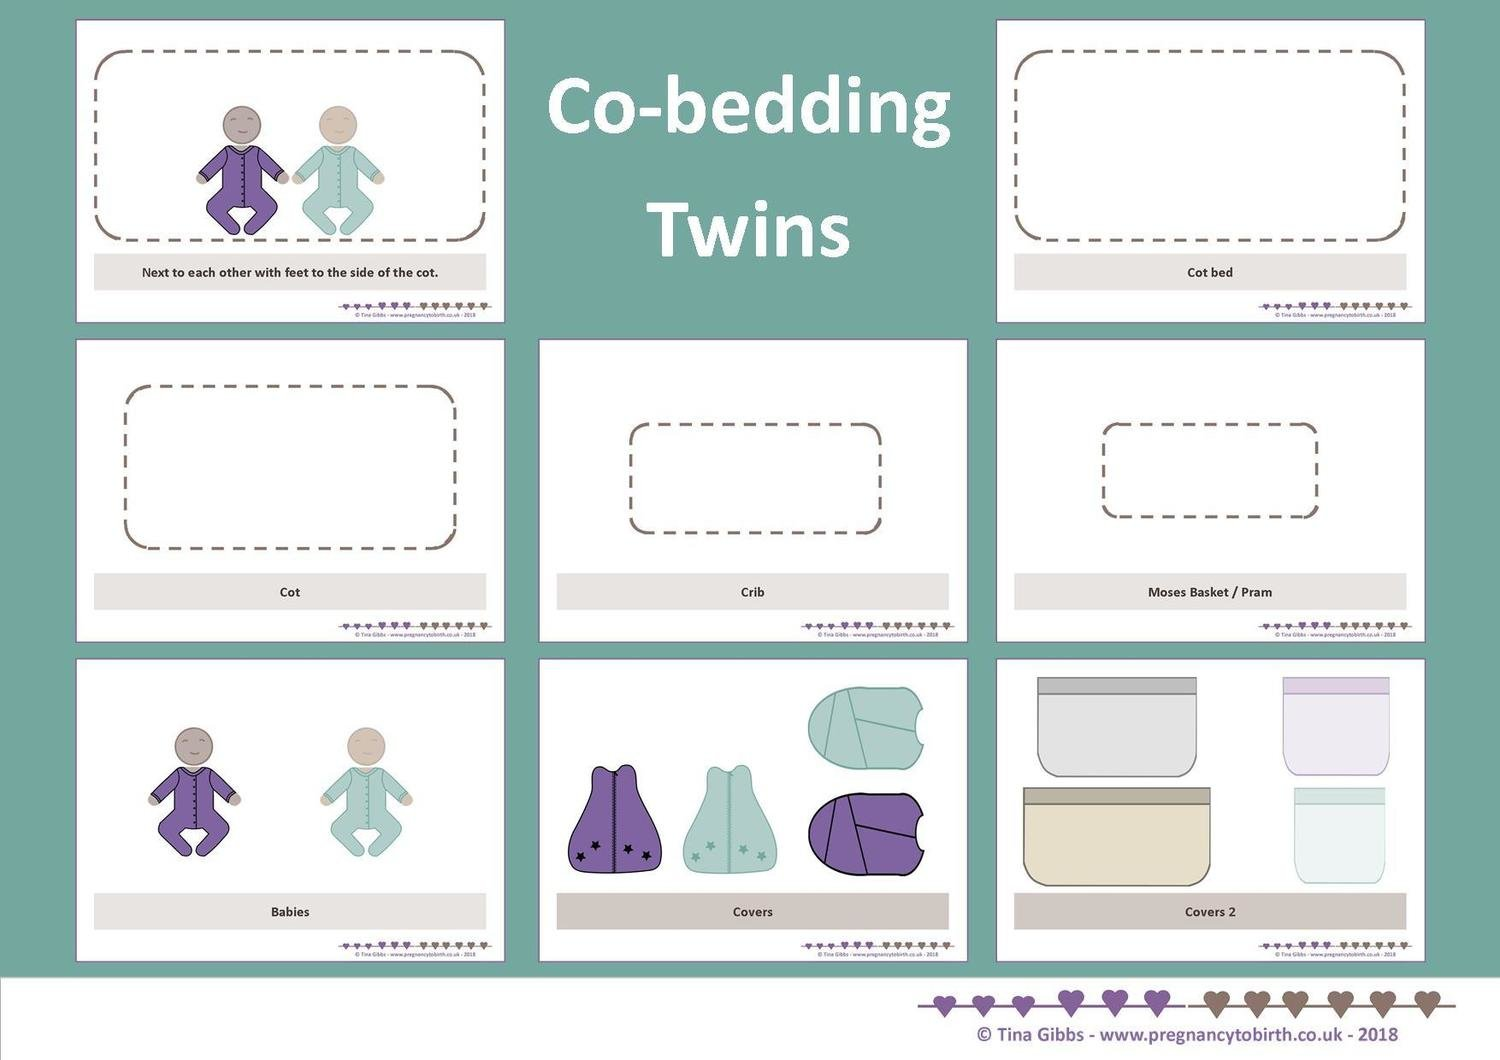 Co-bedding twins